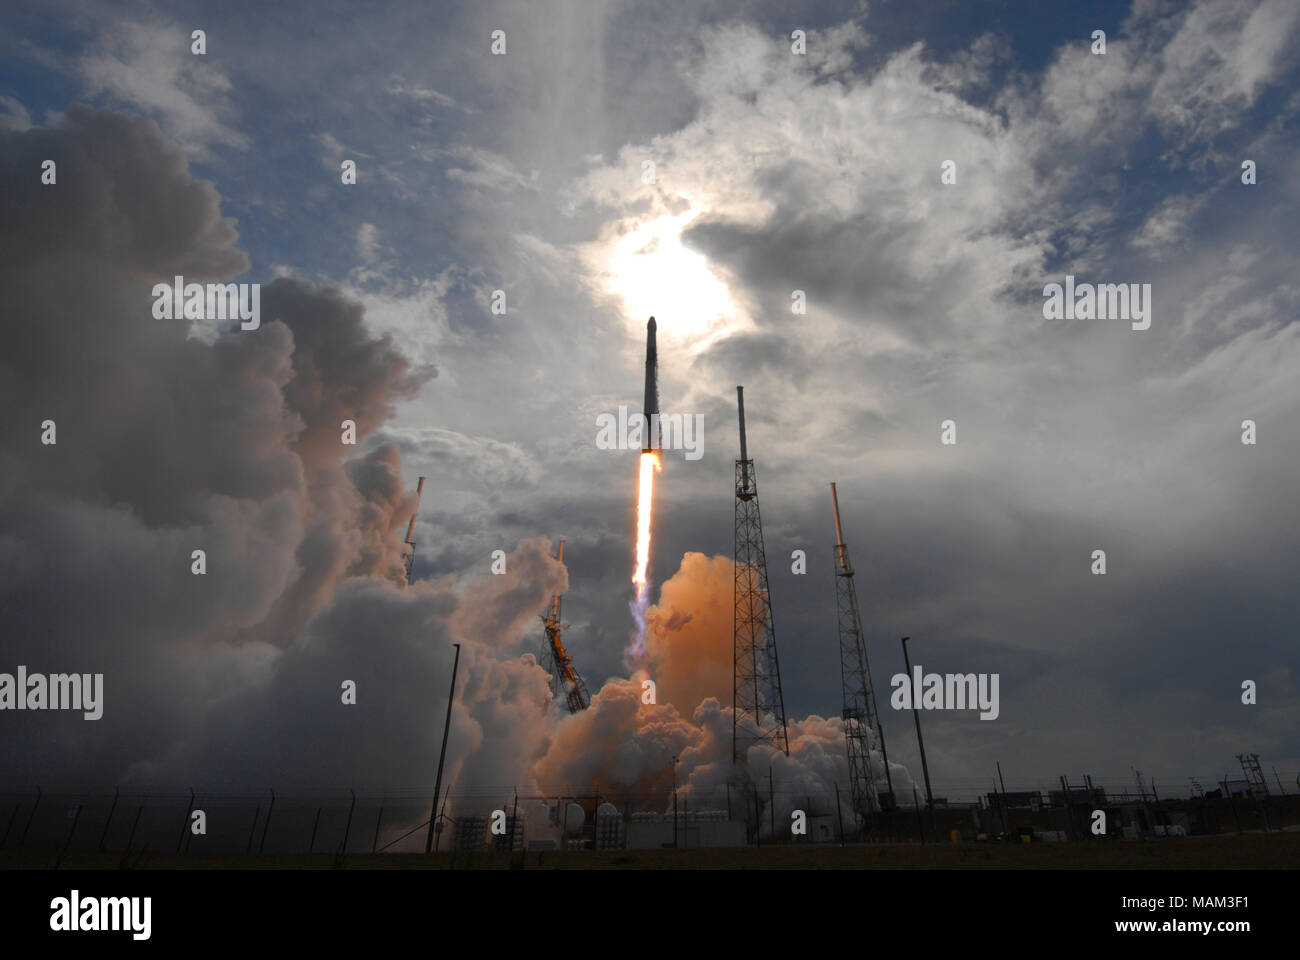 Cape Canaveral, Florida, United States April 2, 2018 - Cape Canaveral, Florida, United States - A SpaceX Falcon 9 rocket successfully launches on April 2, 2018 from launch complex 40 at Cape Canaveral Air Force Station in Florida. The rocket is carrying a Dragon spacecraft containing 5,800 pounds of supplies for the International Space Station (ISS). This is the 14th ISS resupply mission by SpaceX for NASA. (Paul Hennessy/Alamy) - Stock Image